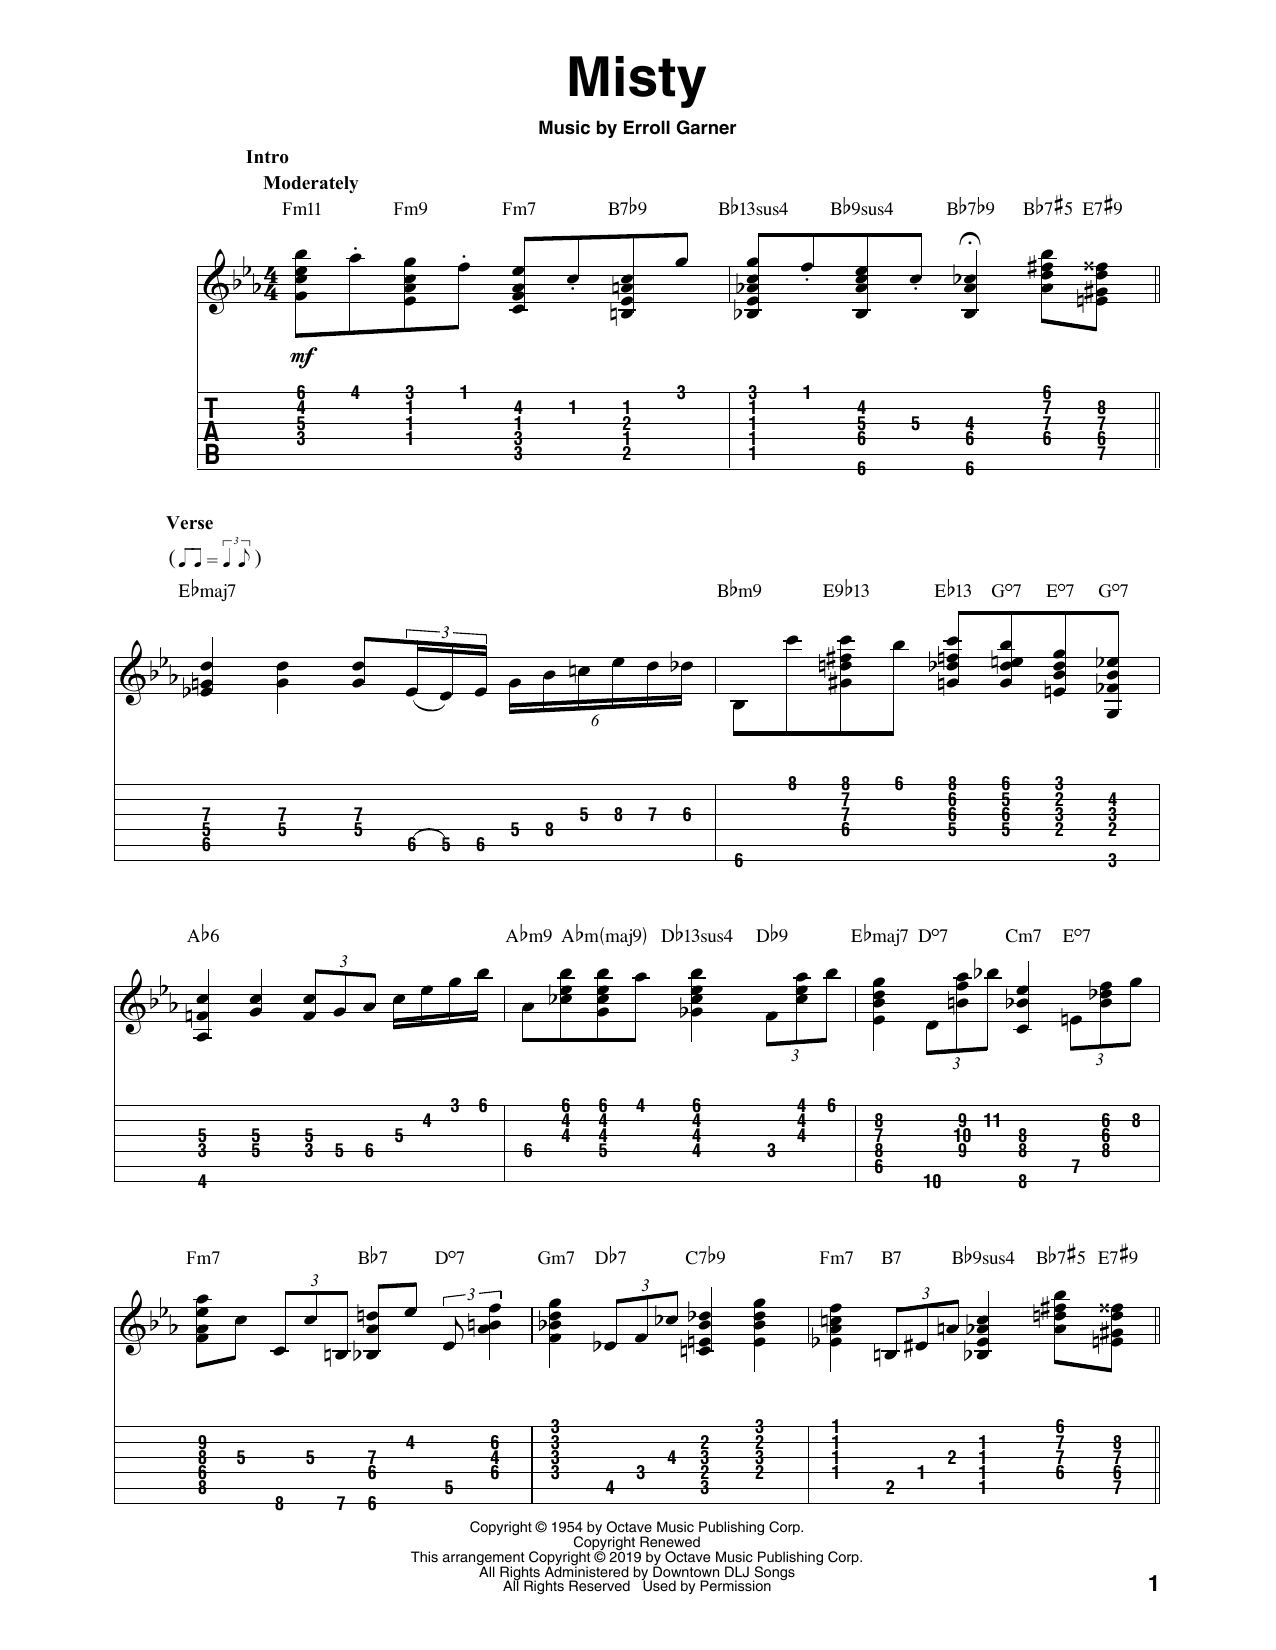 Johnny Mathis 'Misty' Sheet Music Notes, Chords | Download Printable Solo  Guitar Tab - SKU: 414564